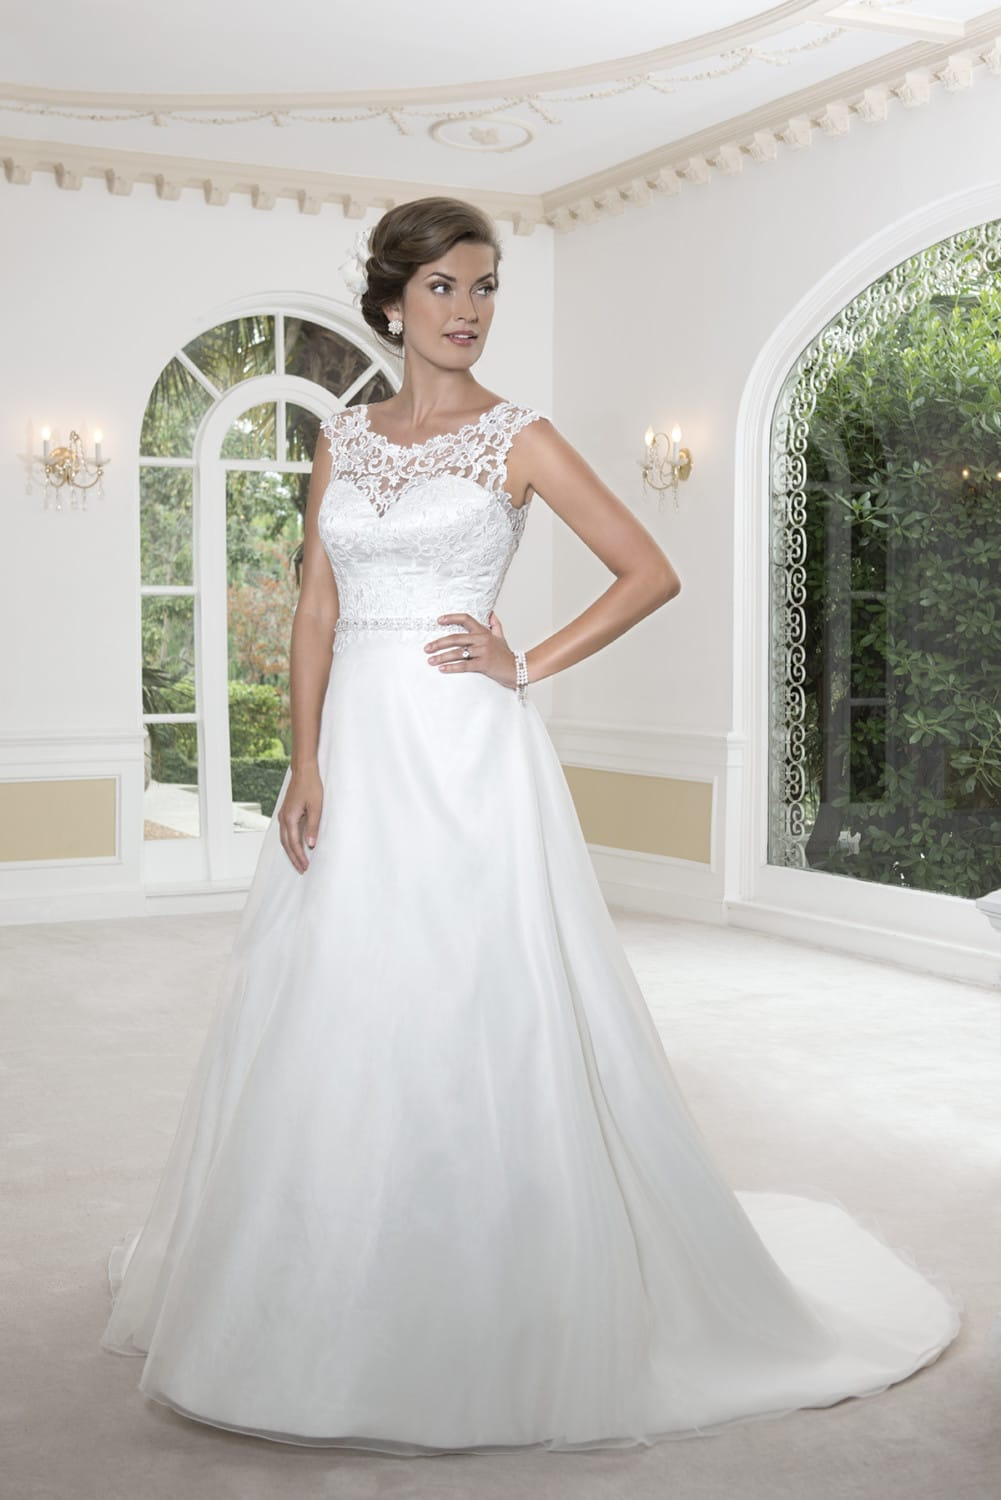 Venus tara wedding dress sell my wedding dress online for Sell wedding dress online